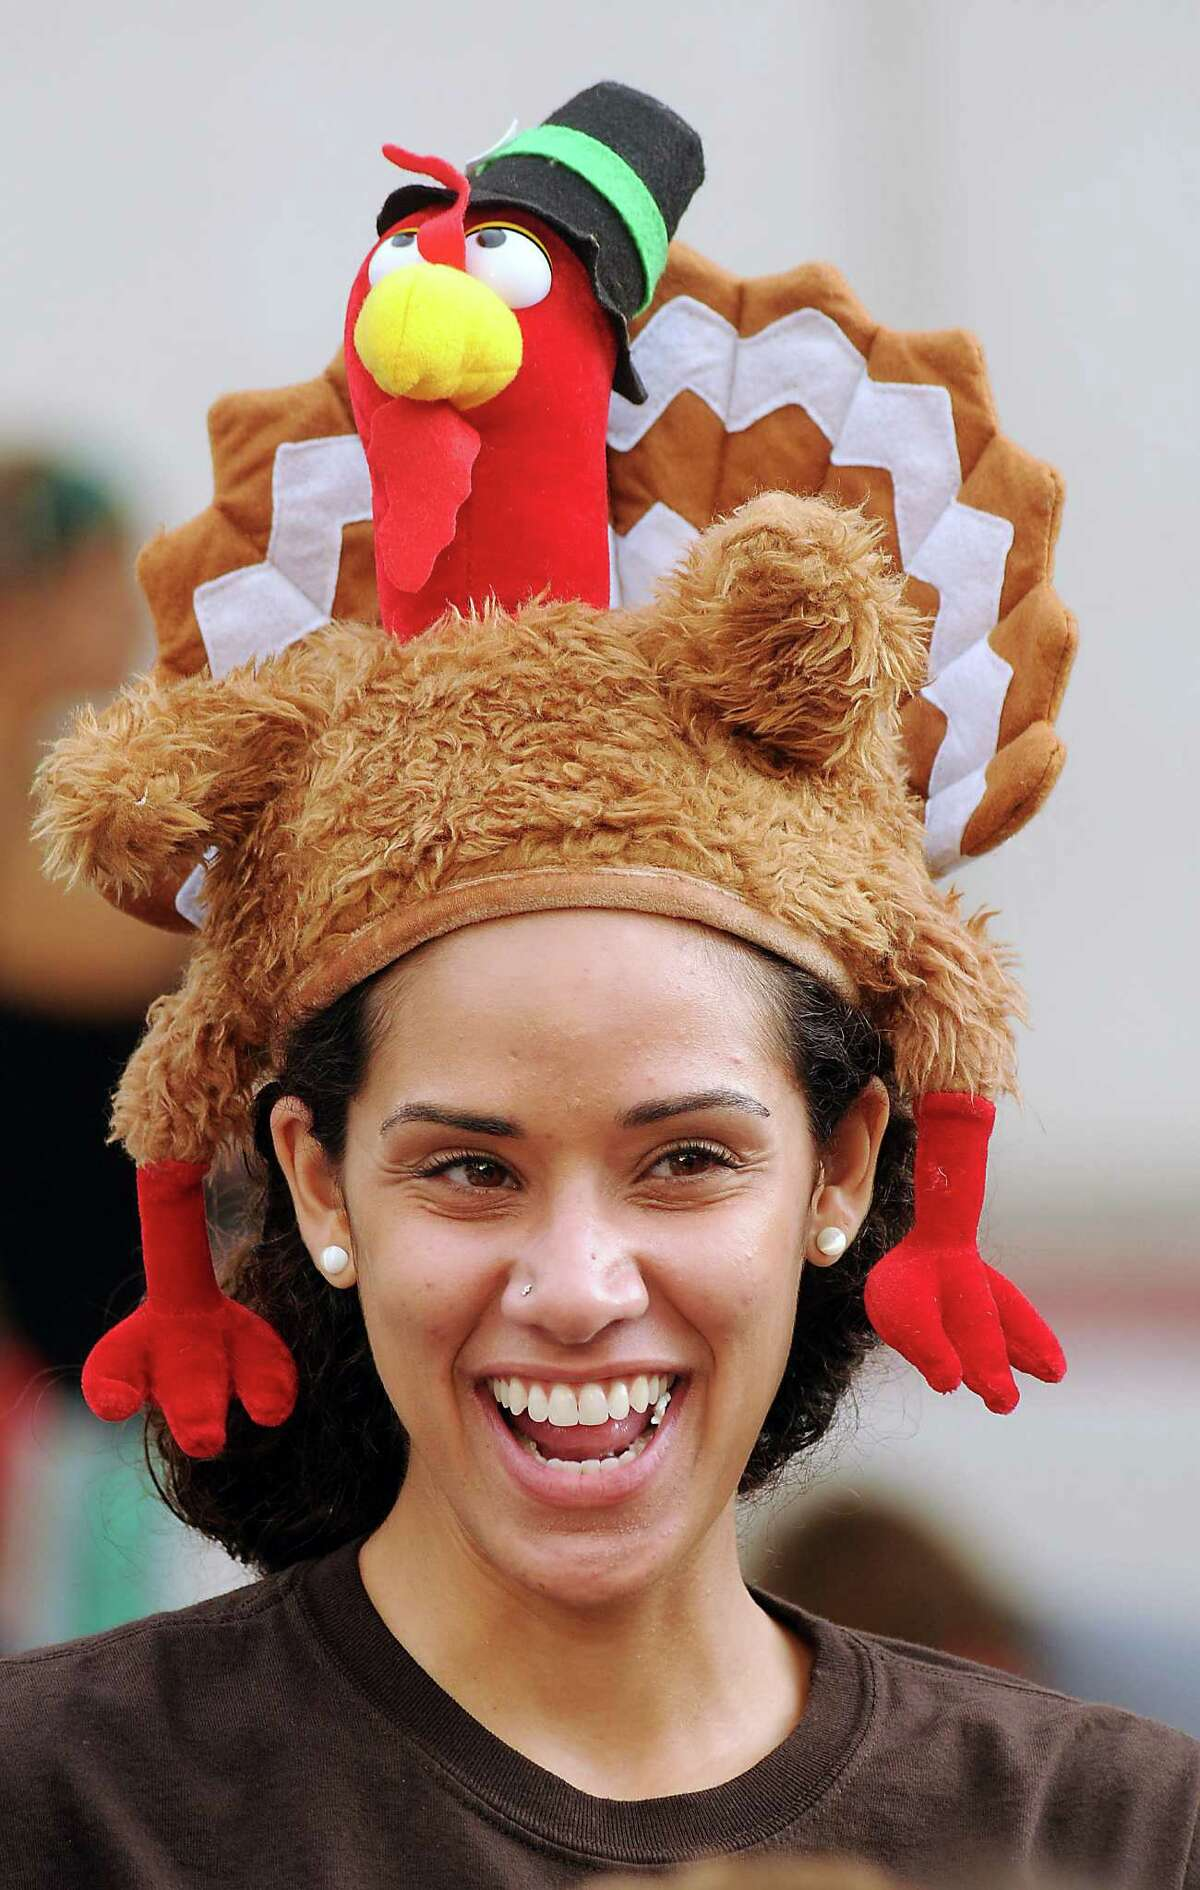 Don't let that holiday turkey go to your head. Lace up those running shoes and take part in one of the many turkey trots in the area.